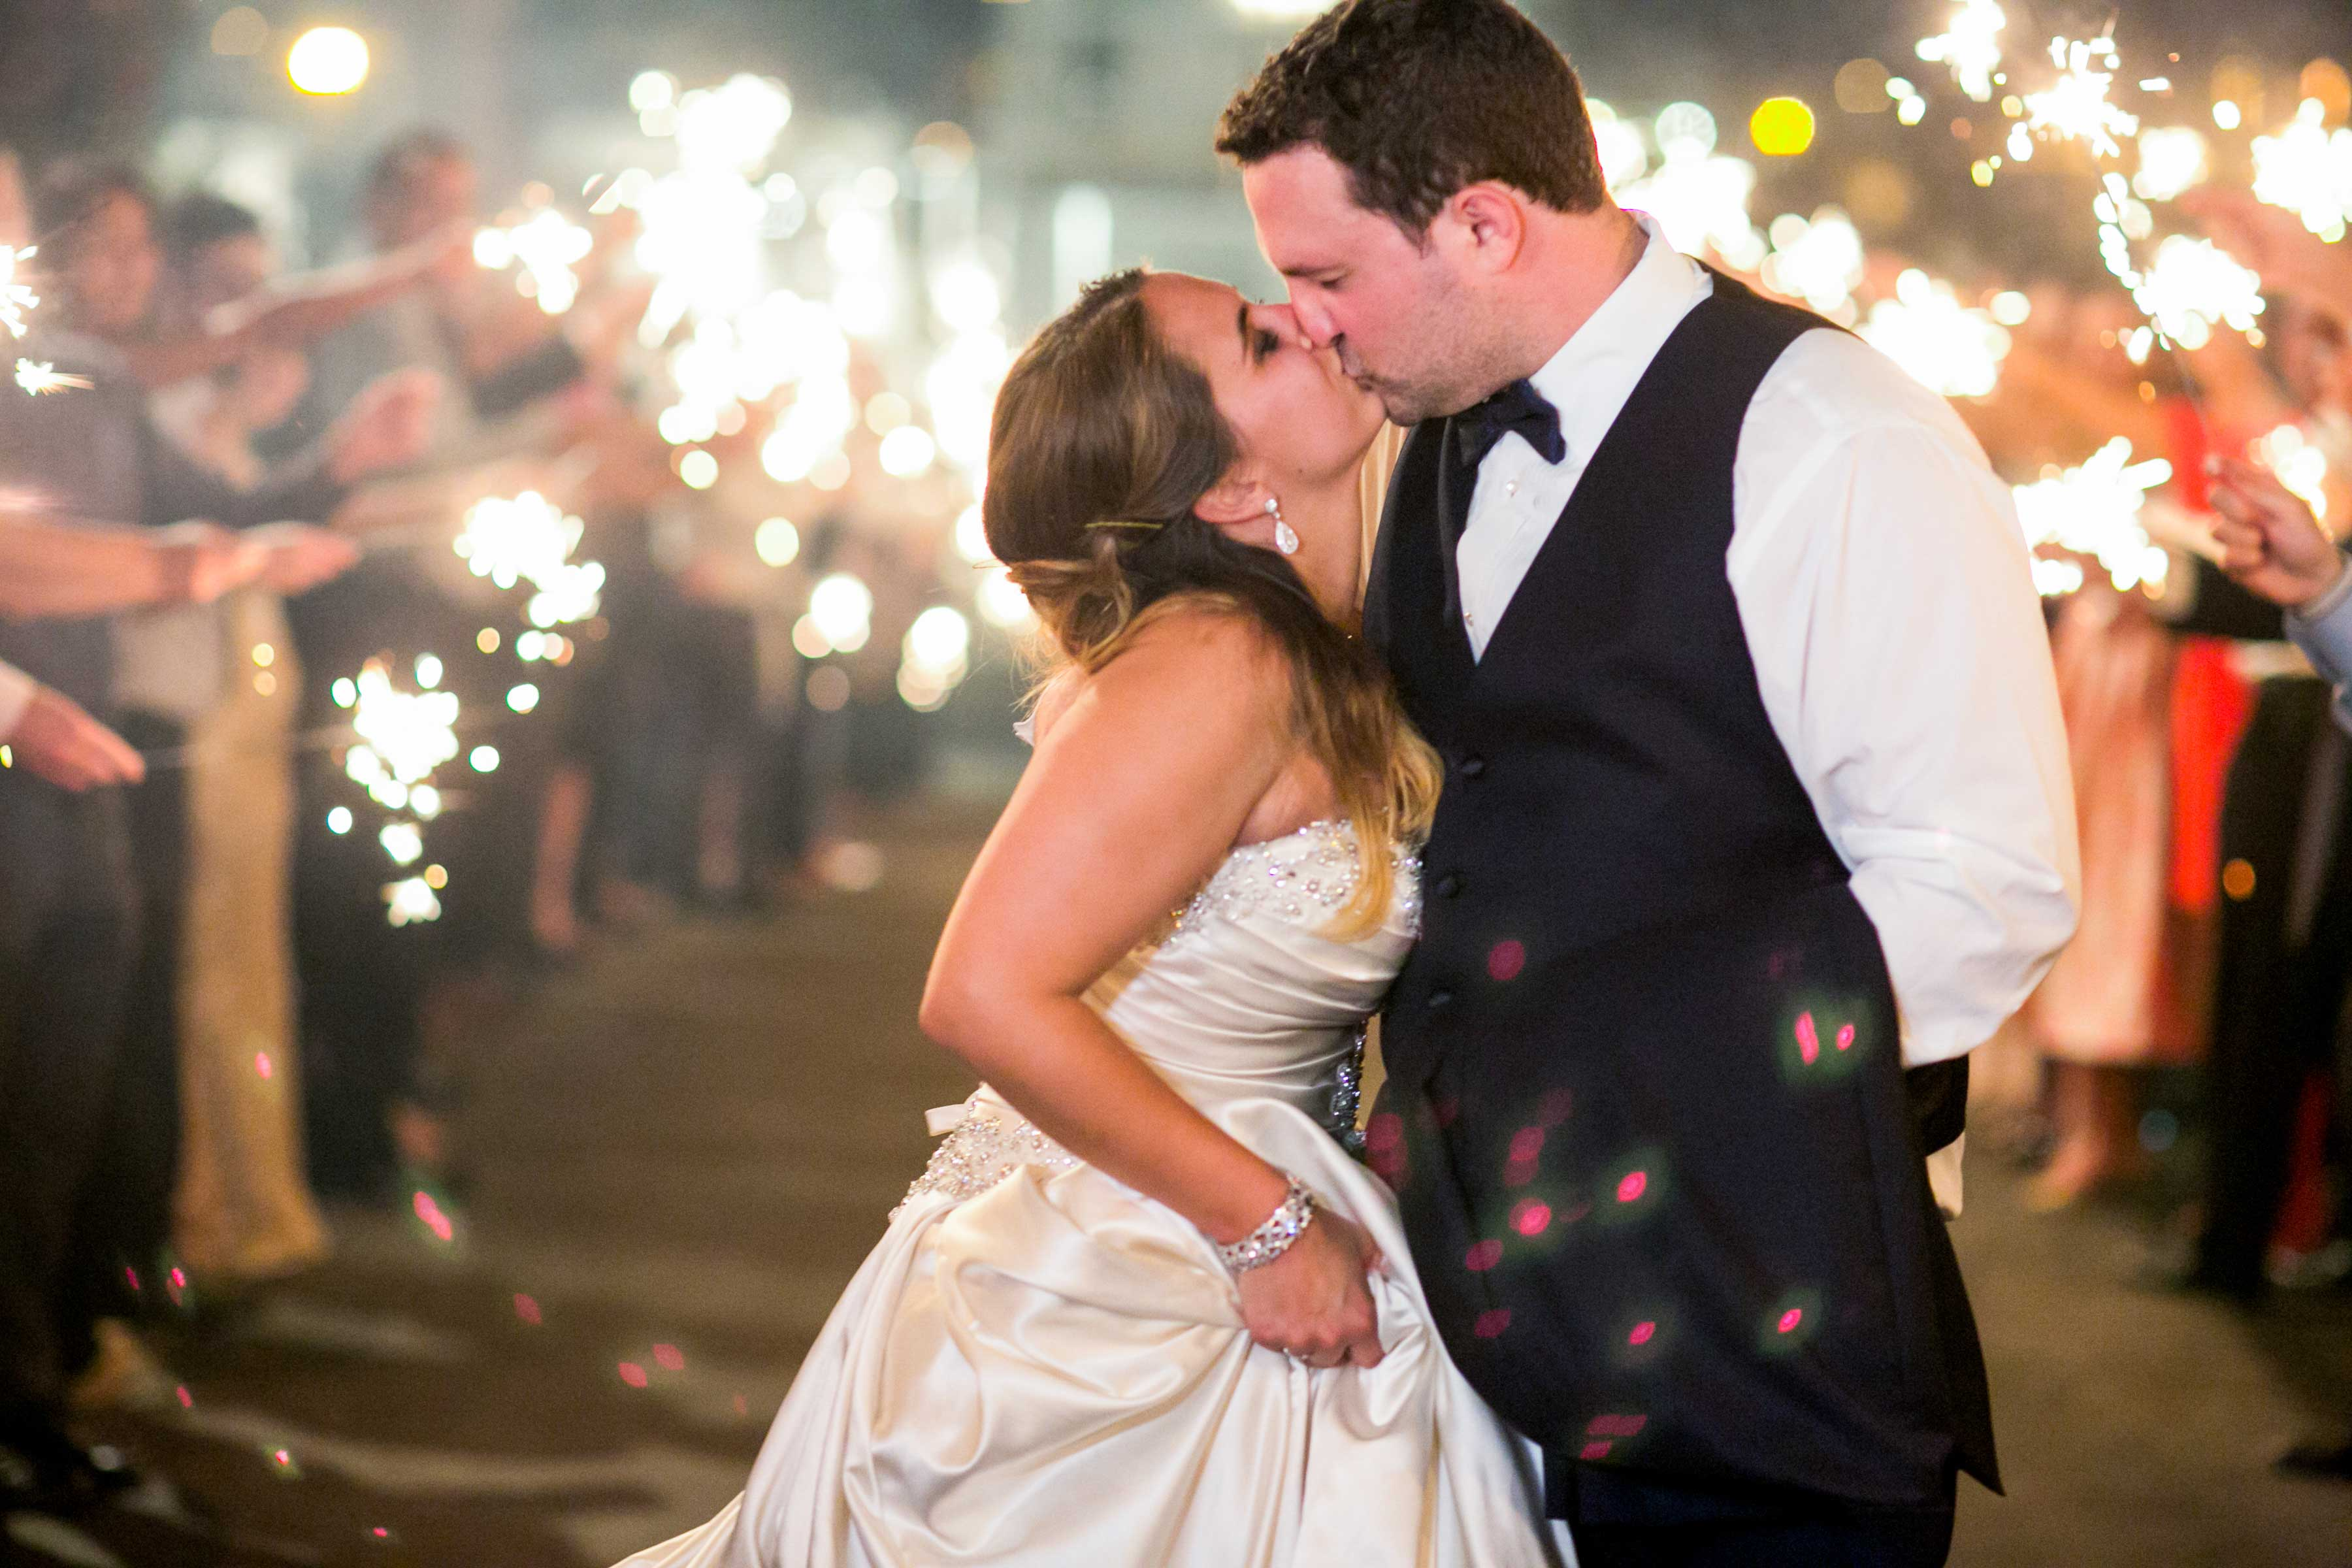 Bride and groom kiss during sparkler exit at wedding reception